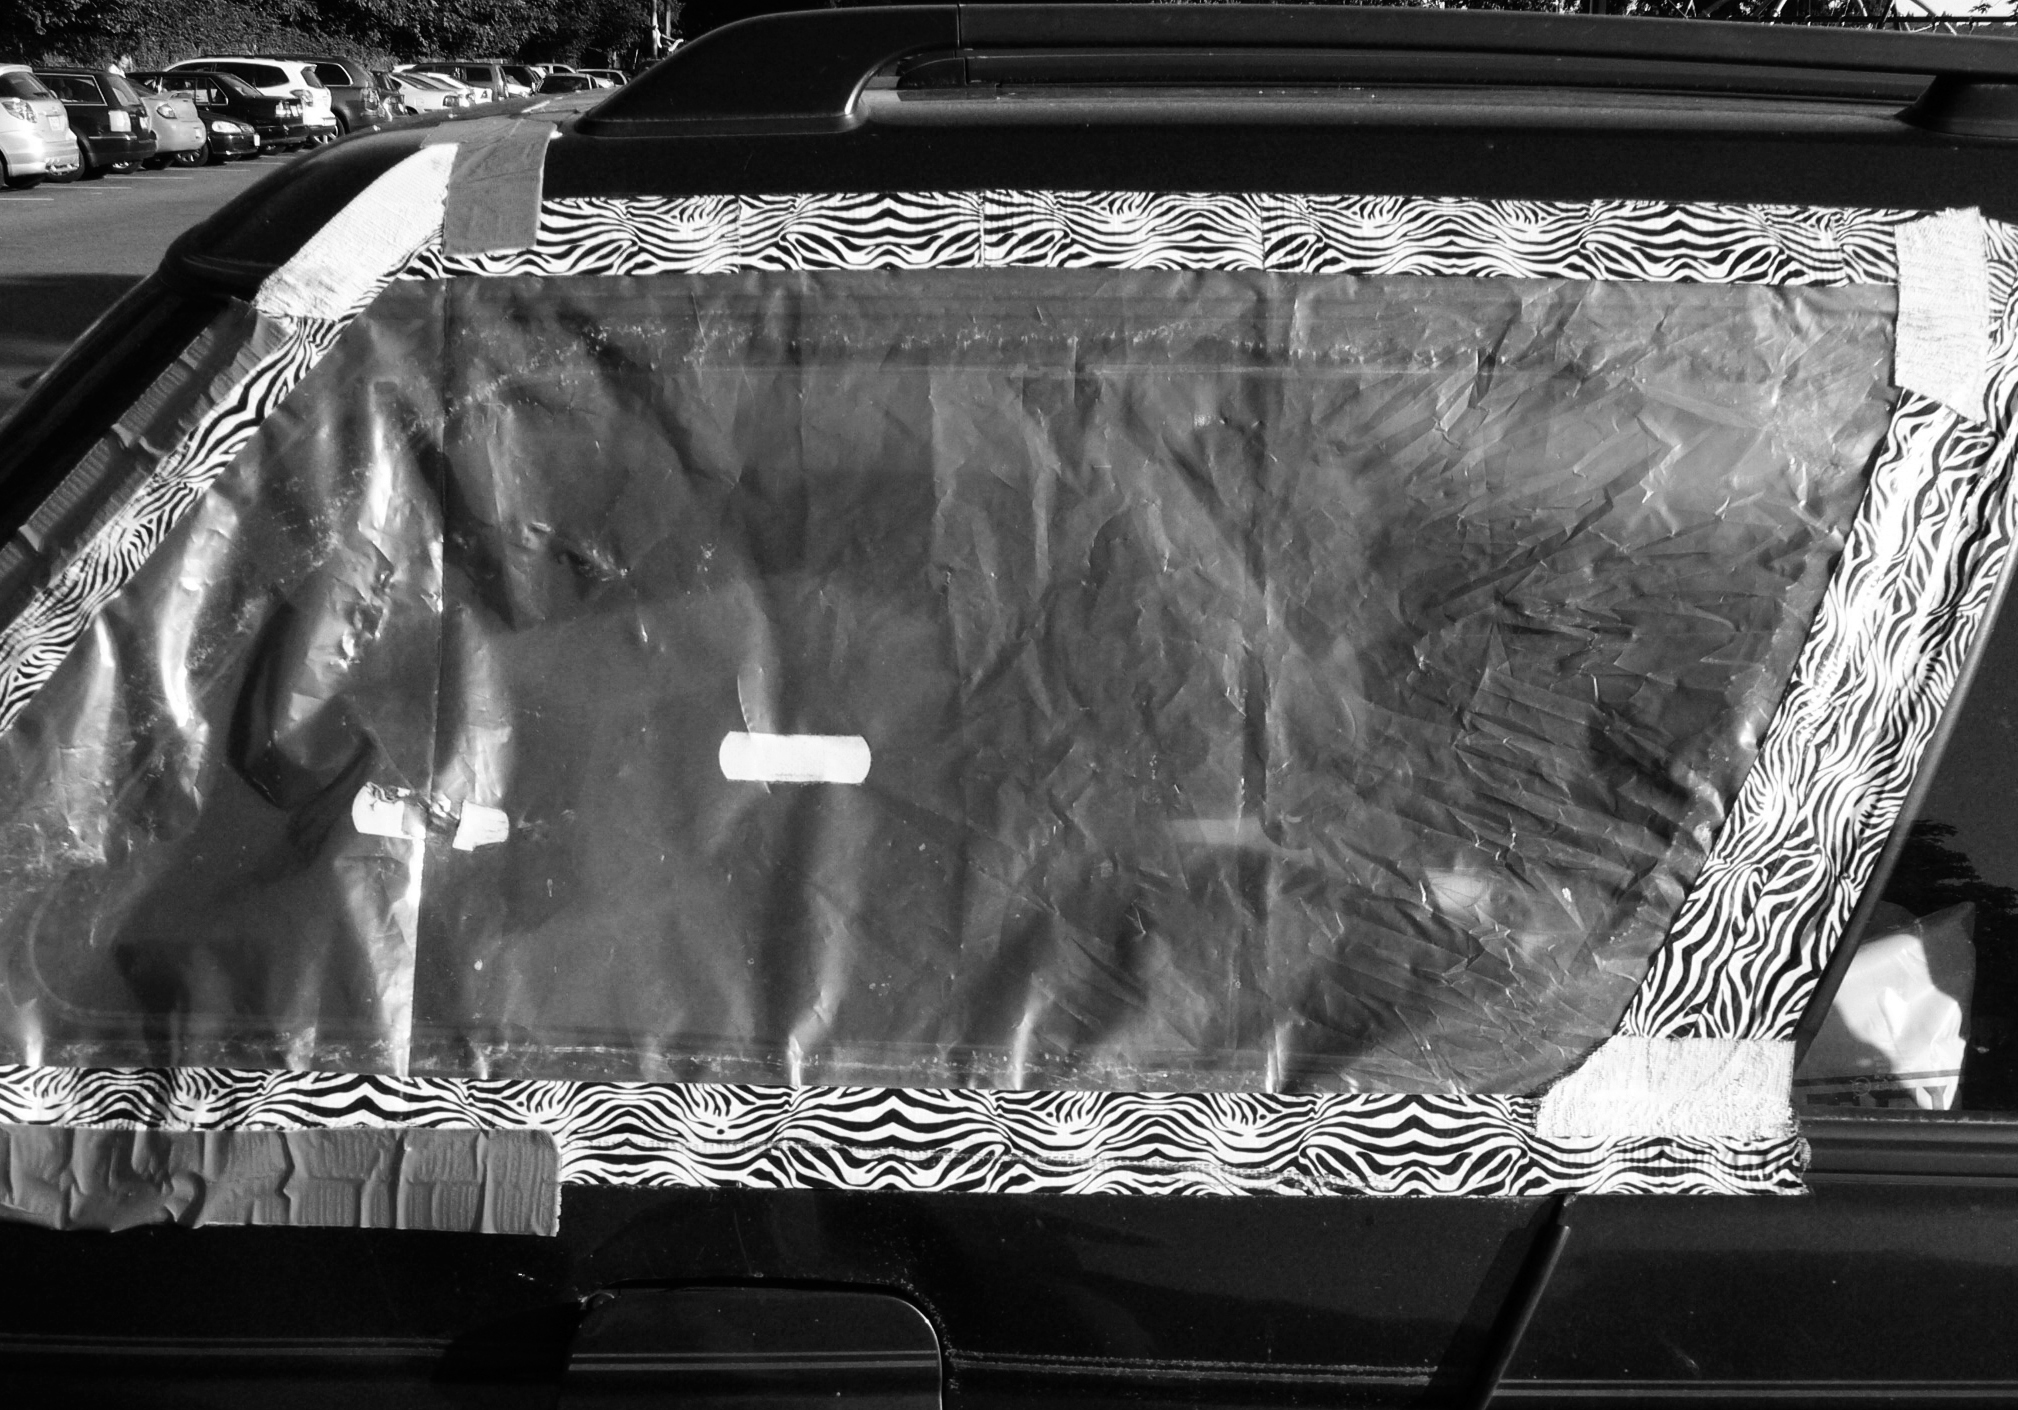 Patterned duct tape and clear plastic cover a broken car window